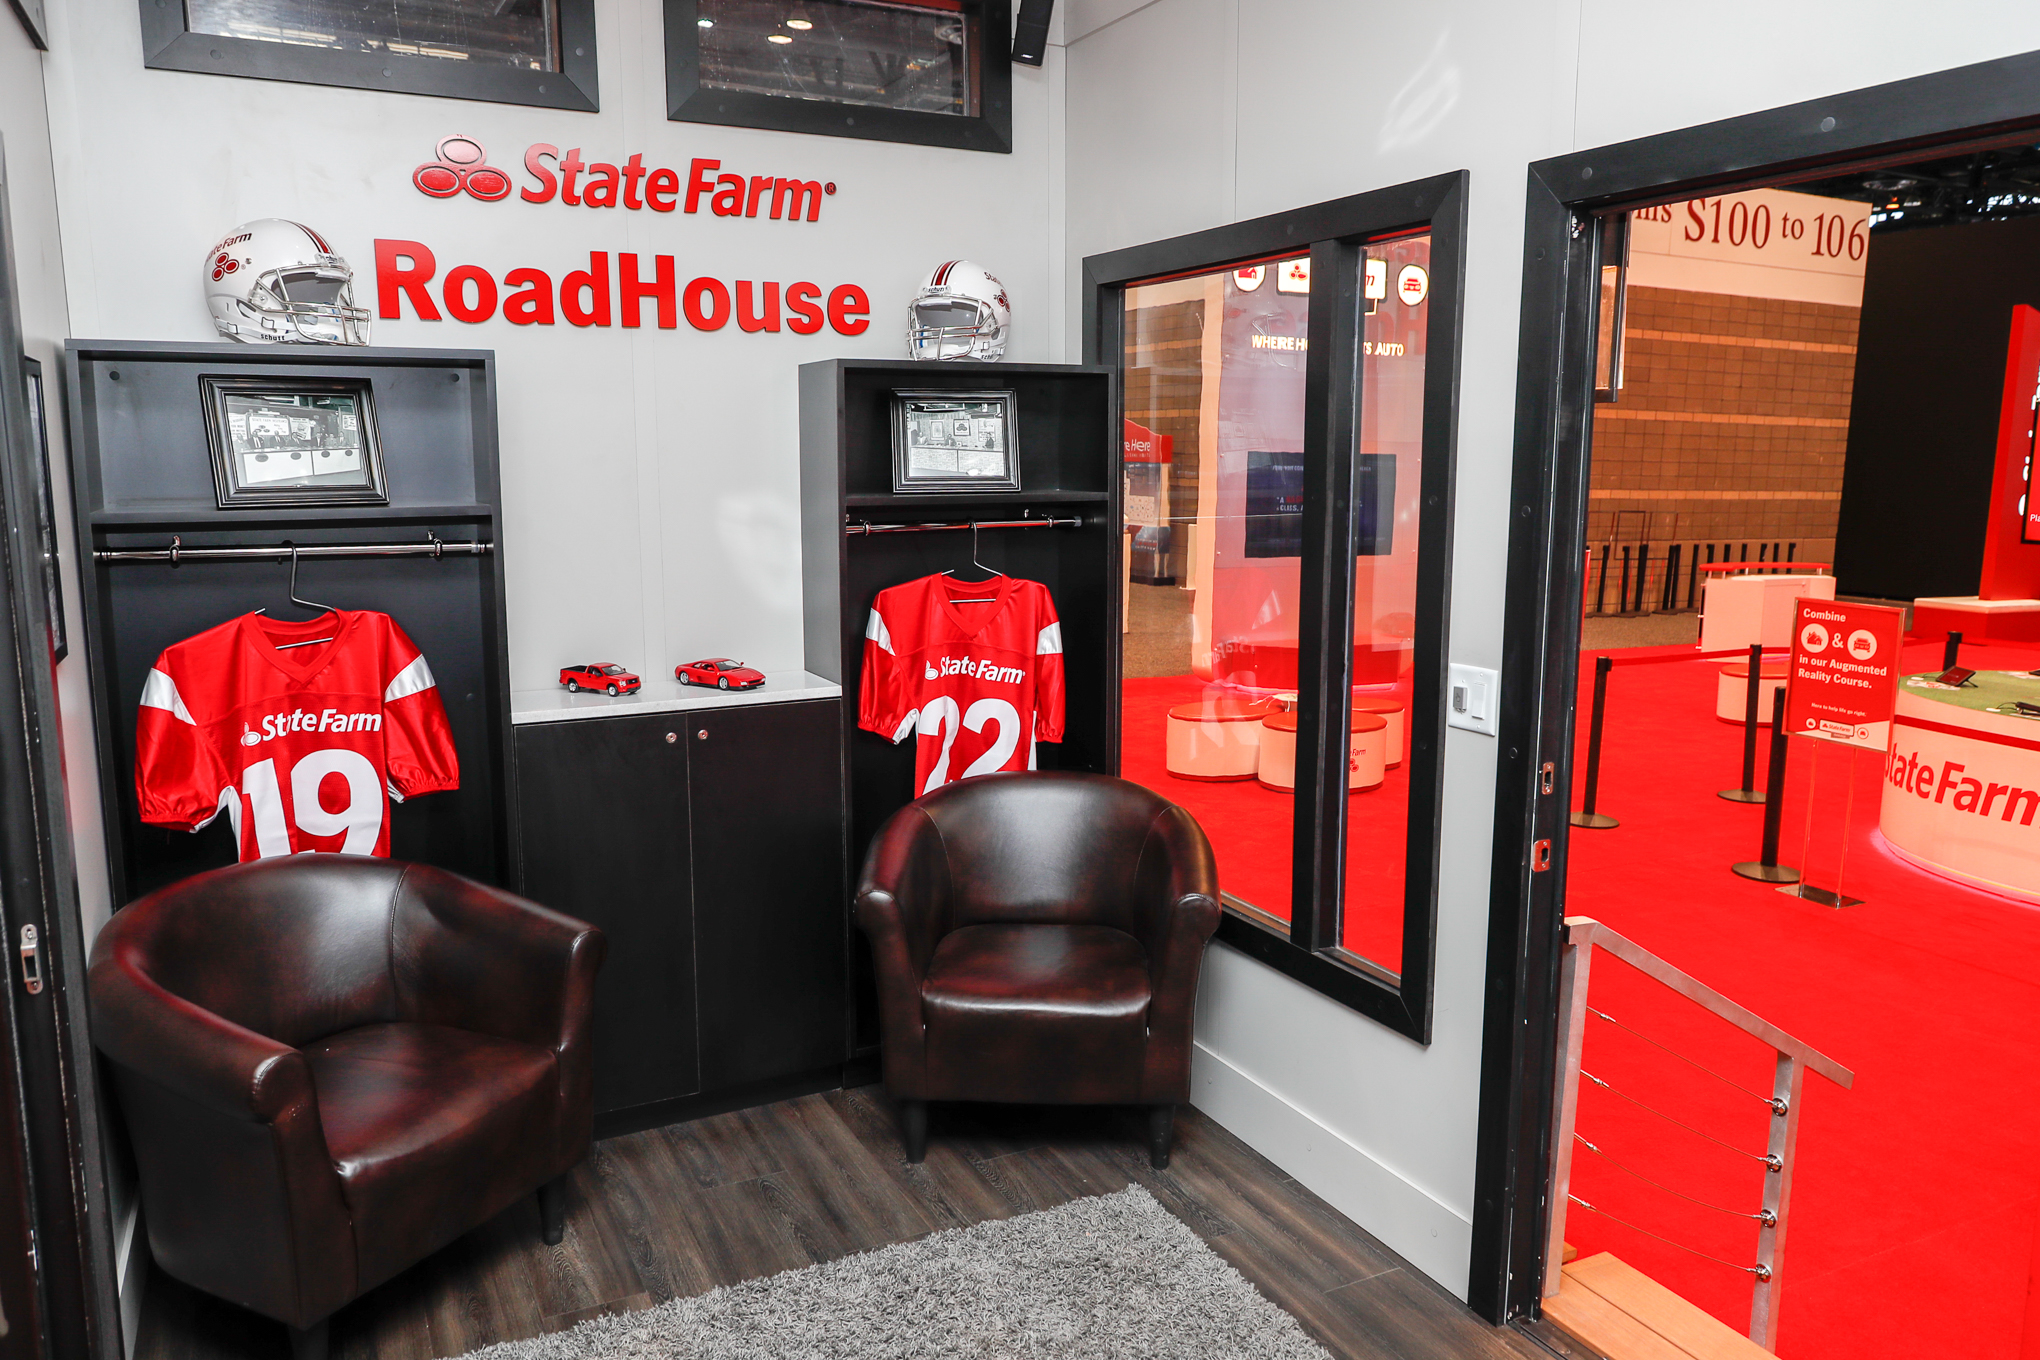 StateFarm-RoadHouse-truck-interior